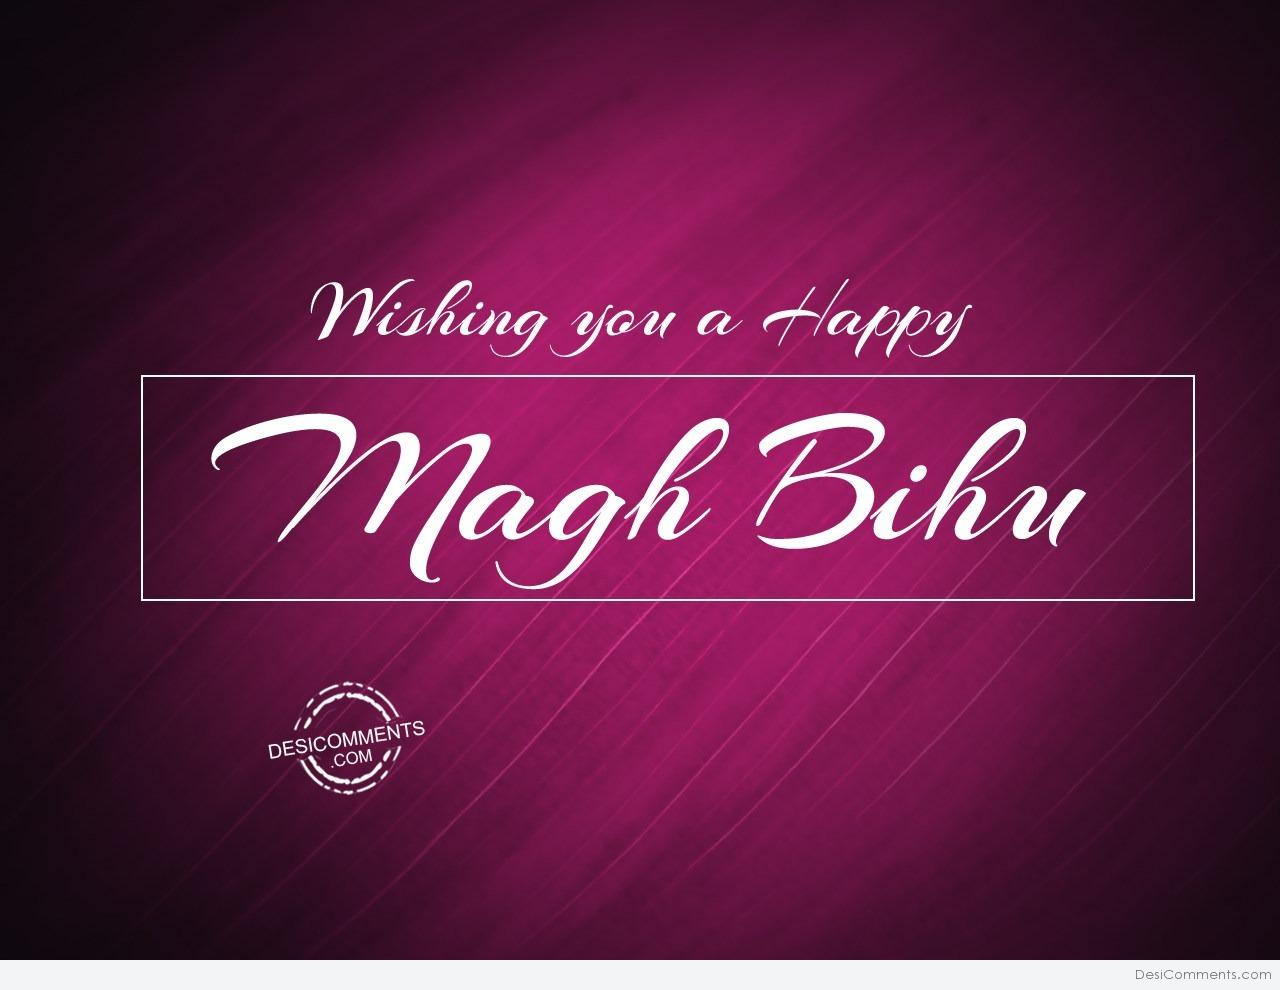 Magh bihu pictures images graphics picture wishing you a happy magh bihu m4hsunfo